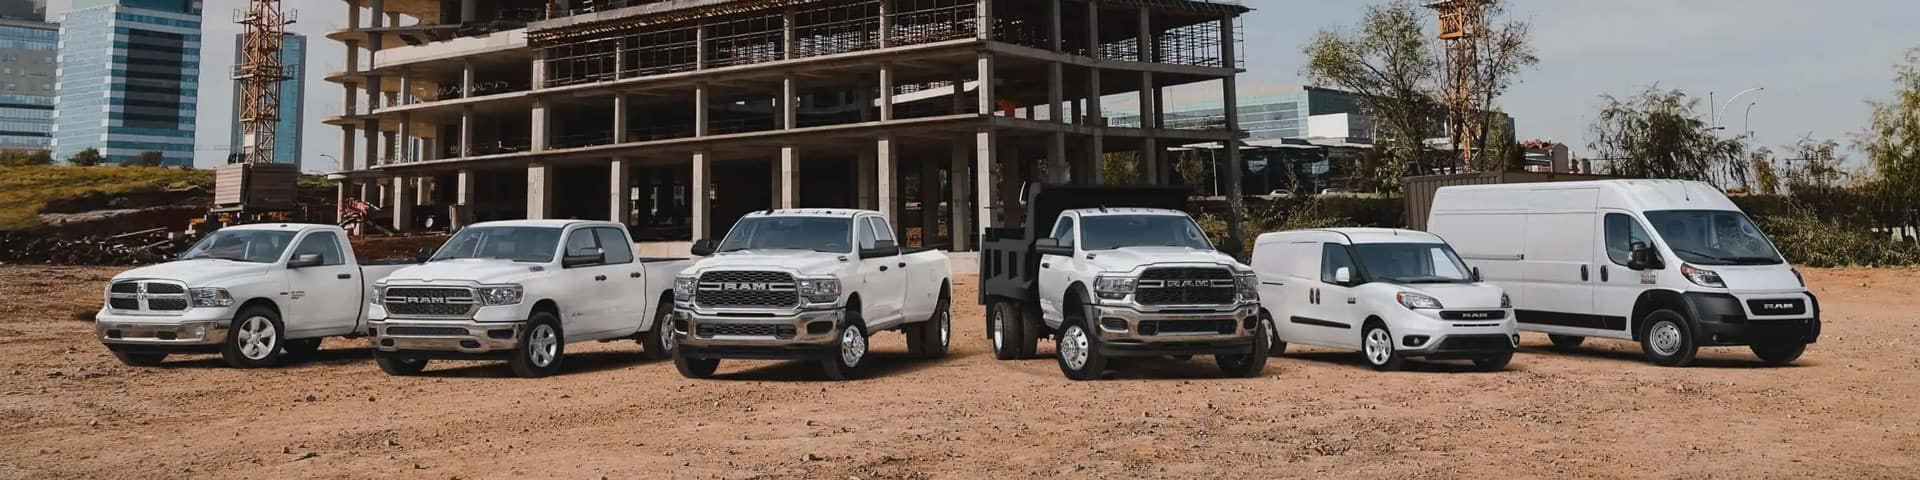 RAM Commercial Vehicles in New Orleans